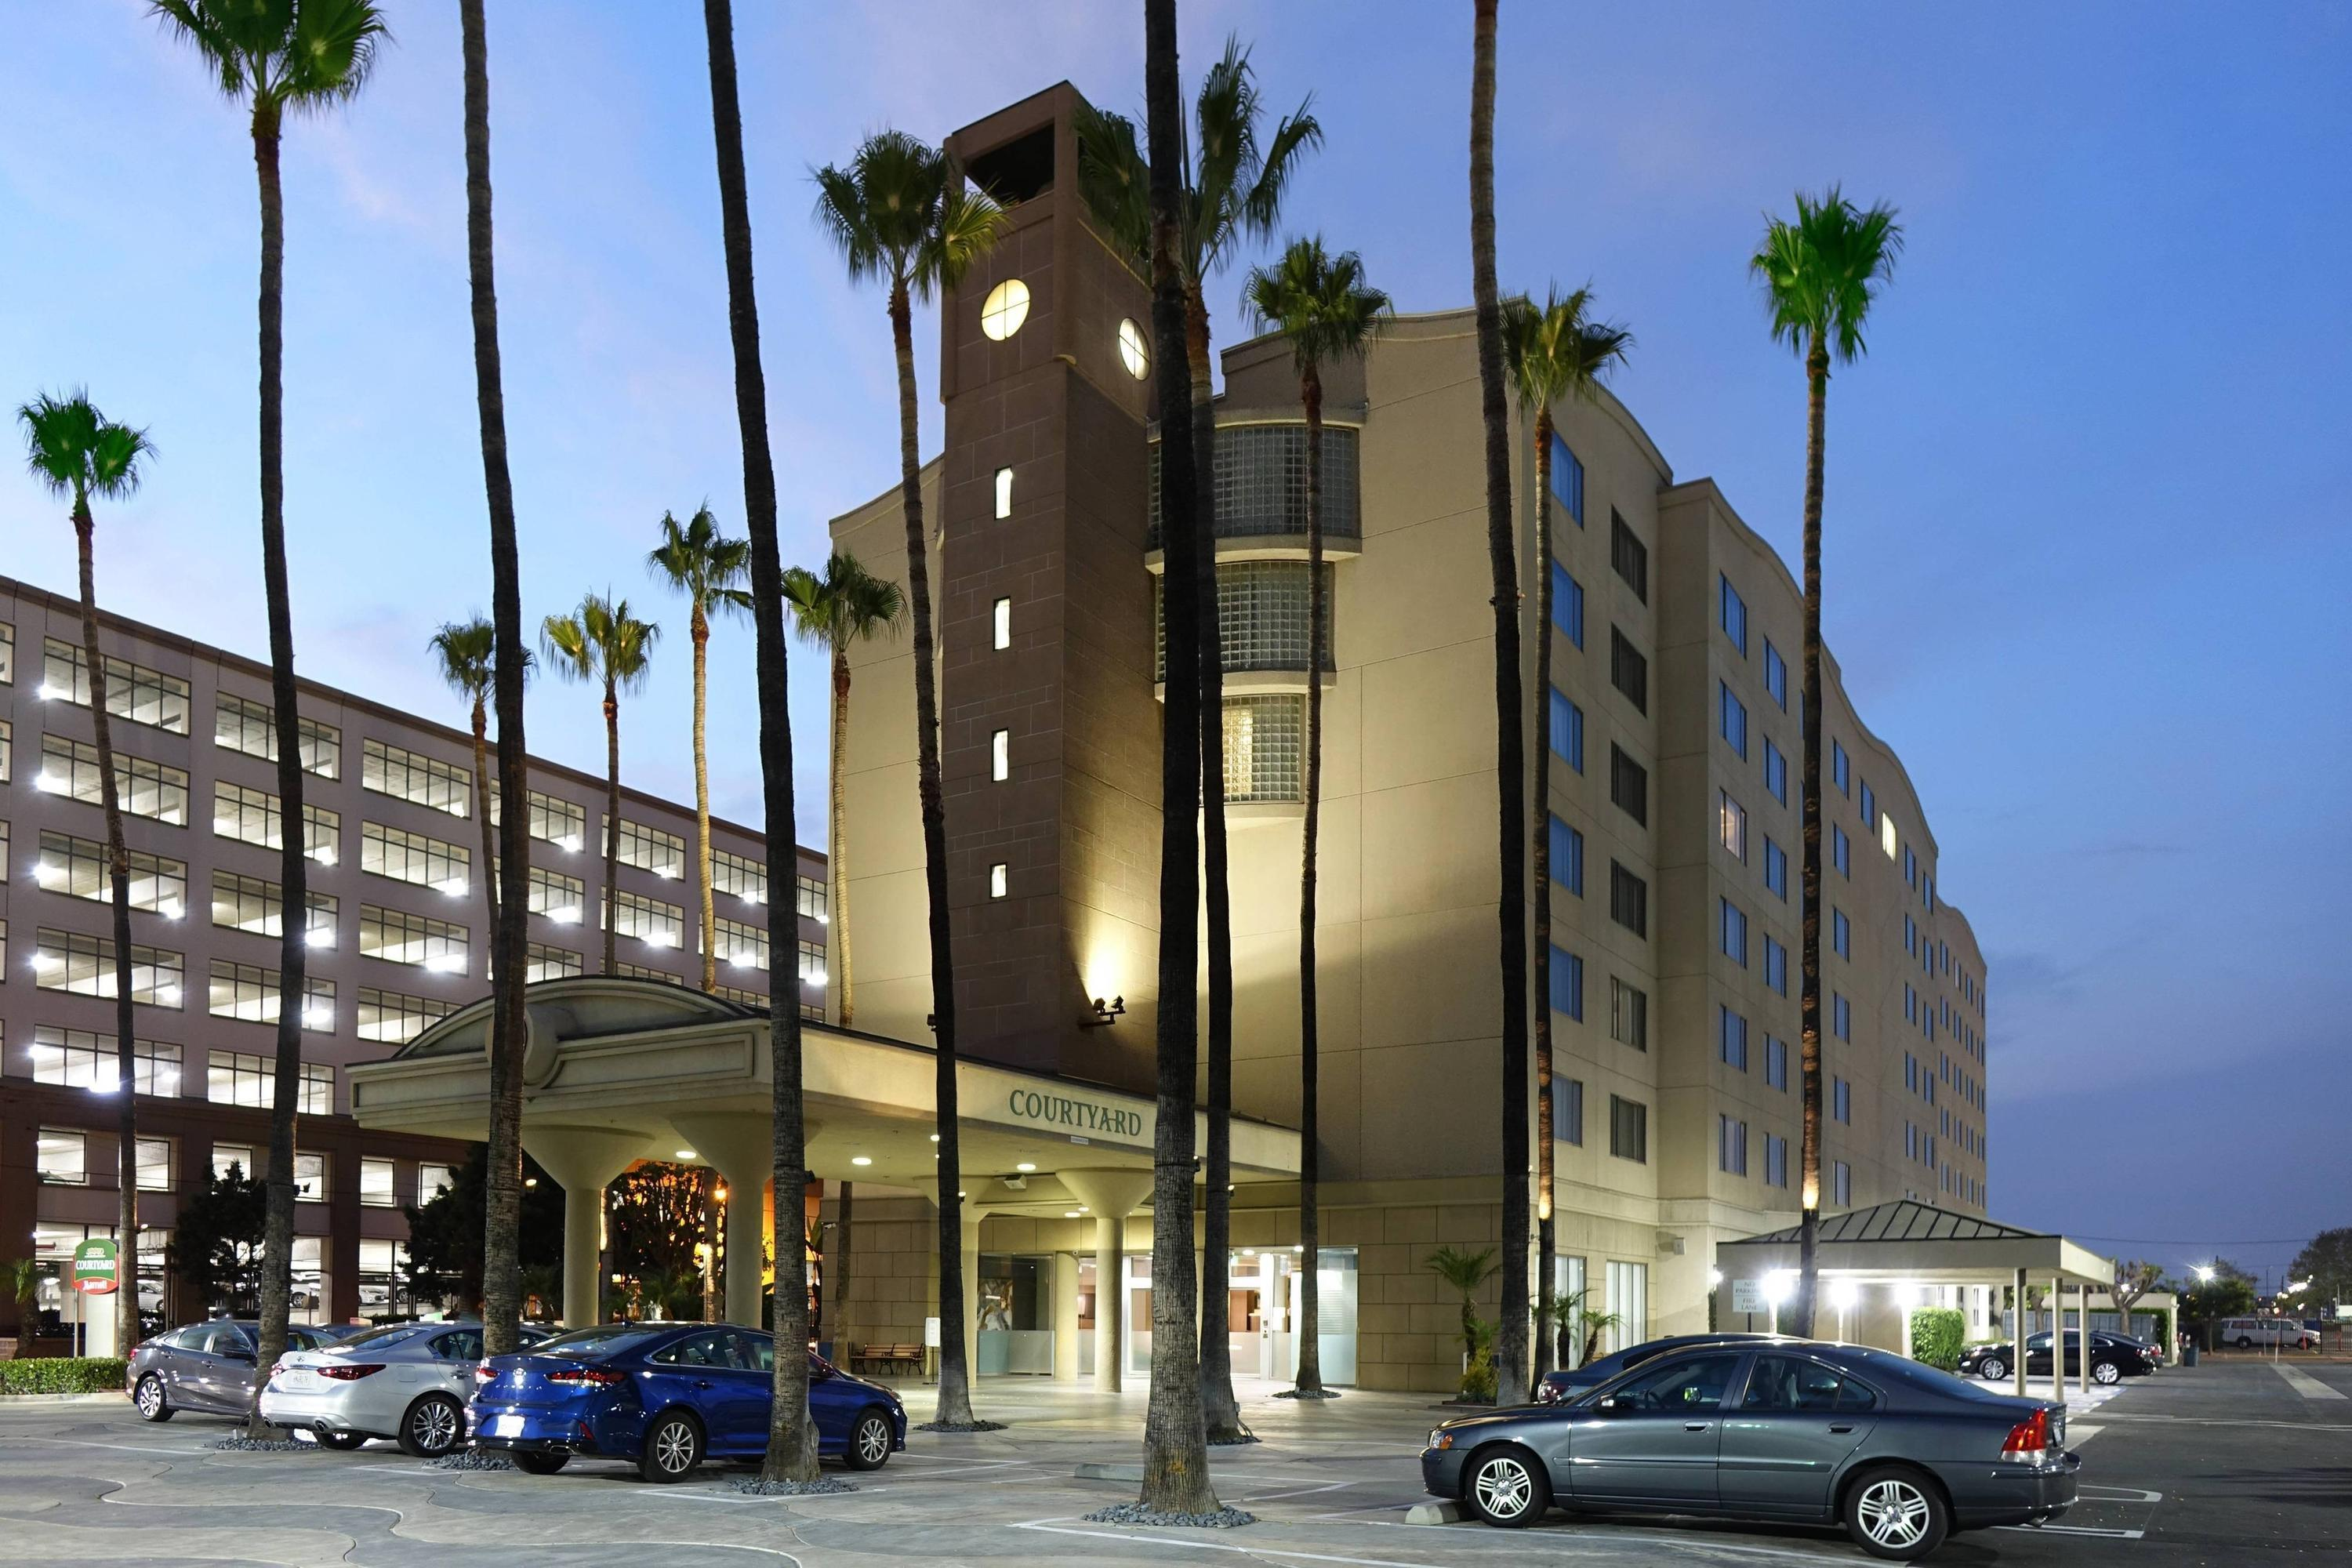 Courtyard By Marriott Los Angeles Lax/Century Boulevard